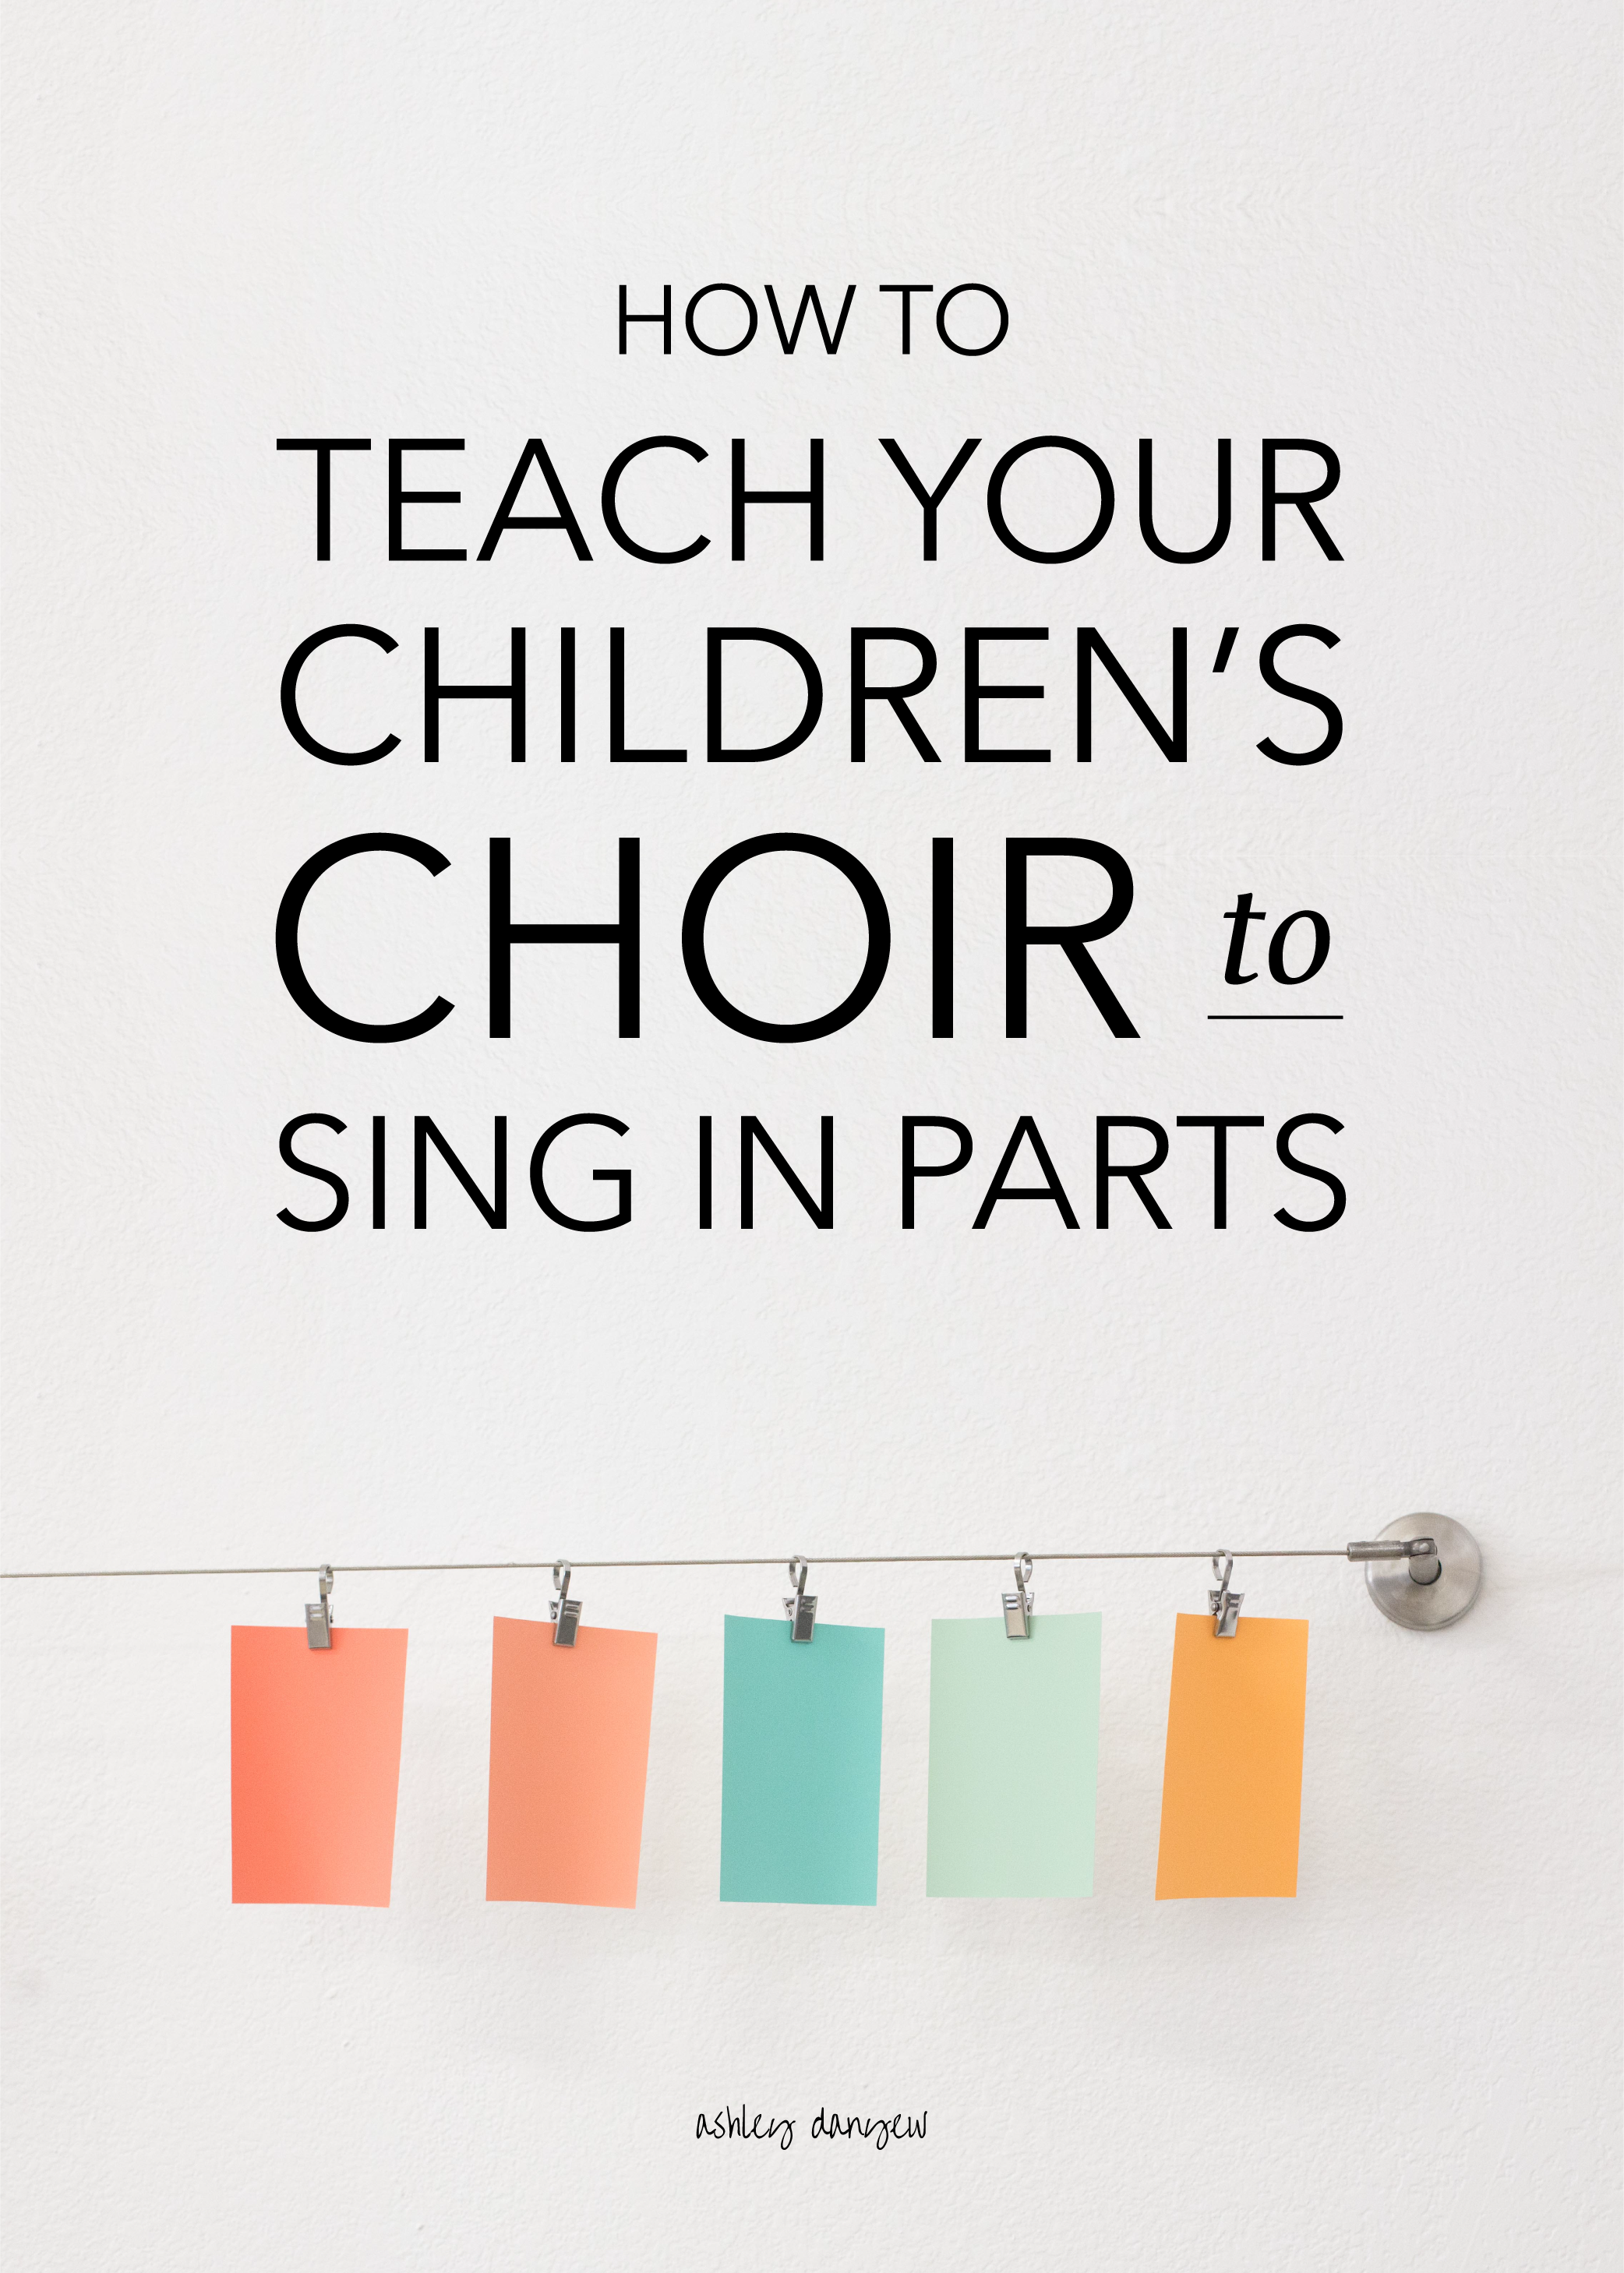 How To Teach Your Childrens Choir Sing In Parts Ashley Danyew Piano Diagram